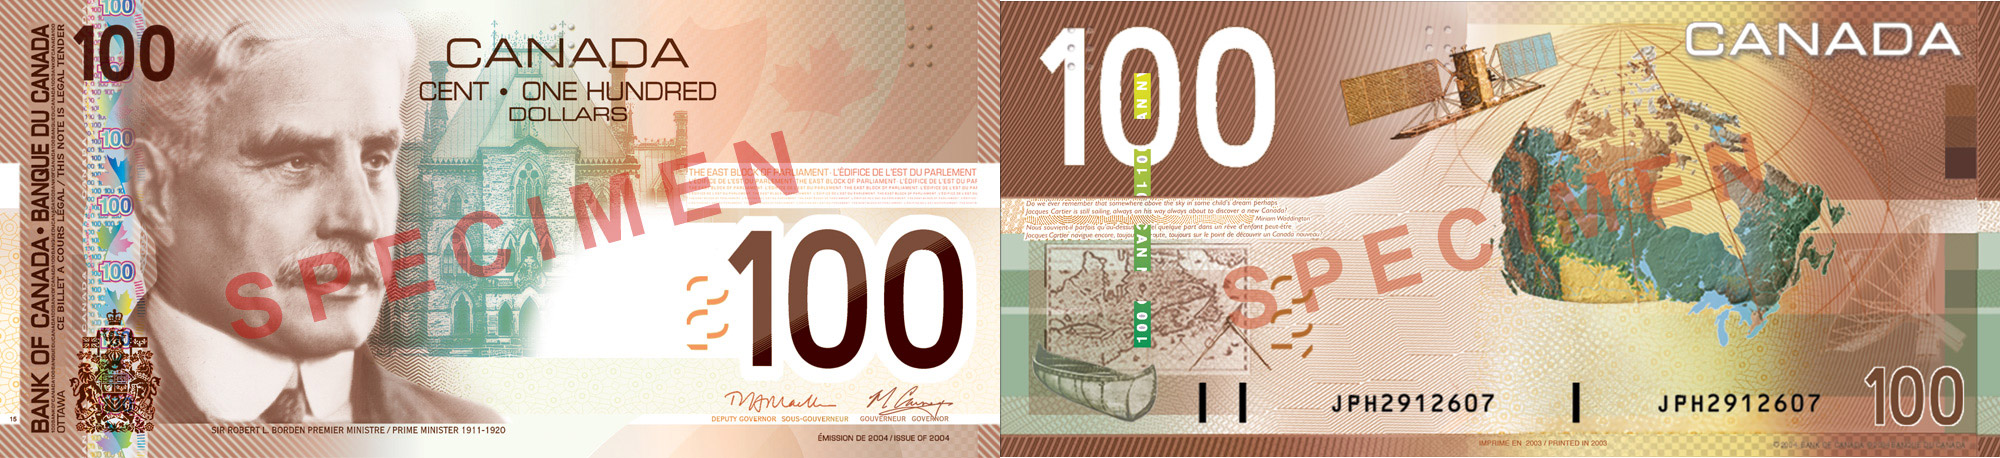 100 dollars 2004 to 2006 - Canada Banknote